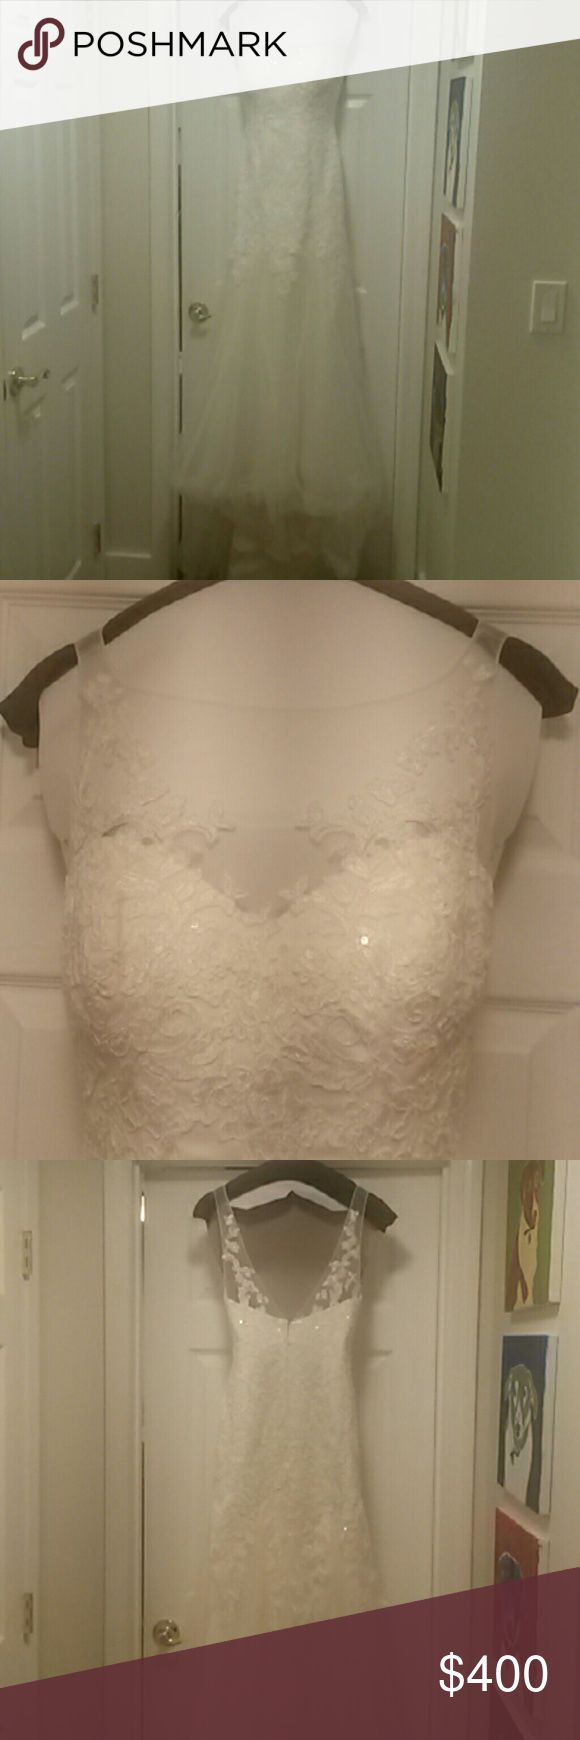 "David's Bridal Illusion wedding dress size 4/6 Style # MK3718 Purchased as a size 6 and took it in at the tummy area. My ribcage is a 6, but my waistline is a 4. I'm normally a David's Bridal bridesmaid dress size 4...In heels I was  5' 8"" and the dress still drapes the ground. I also had a bustle installed, hook & eye system. Professional cleaned. Will ship in it's dress bag. Smoke free home. Can also include floor length veil. For sale cheaper on preownedweddingdresses.com Listing ID…"